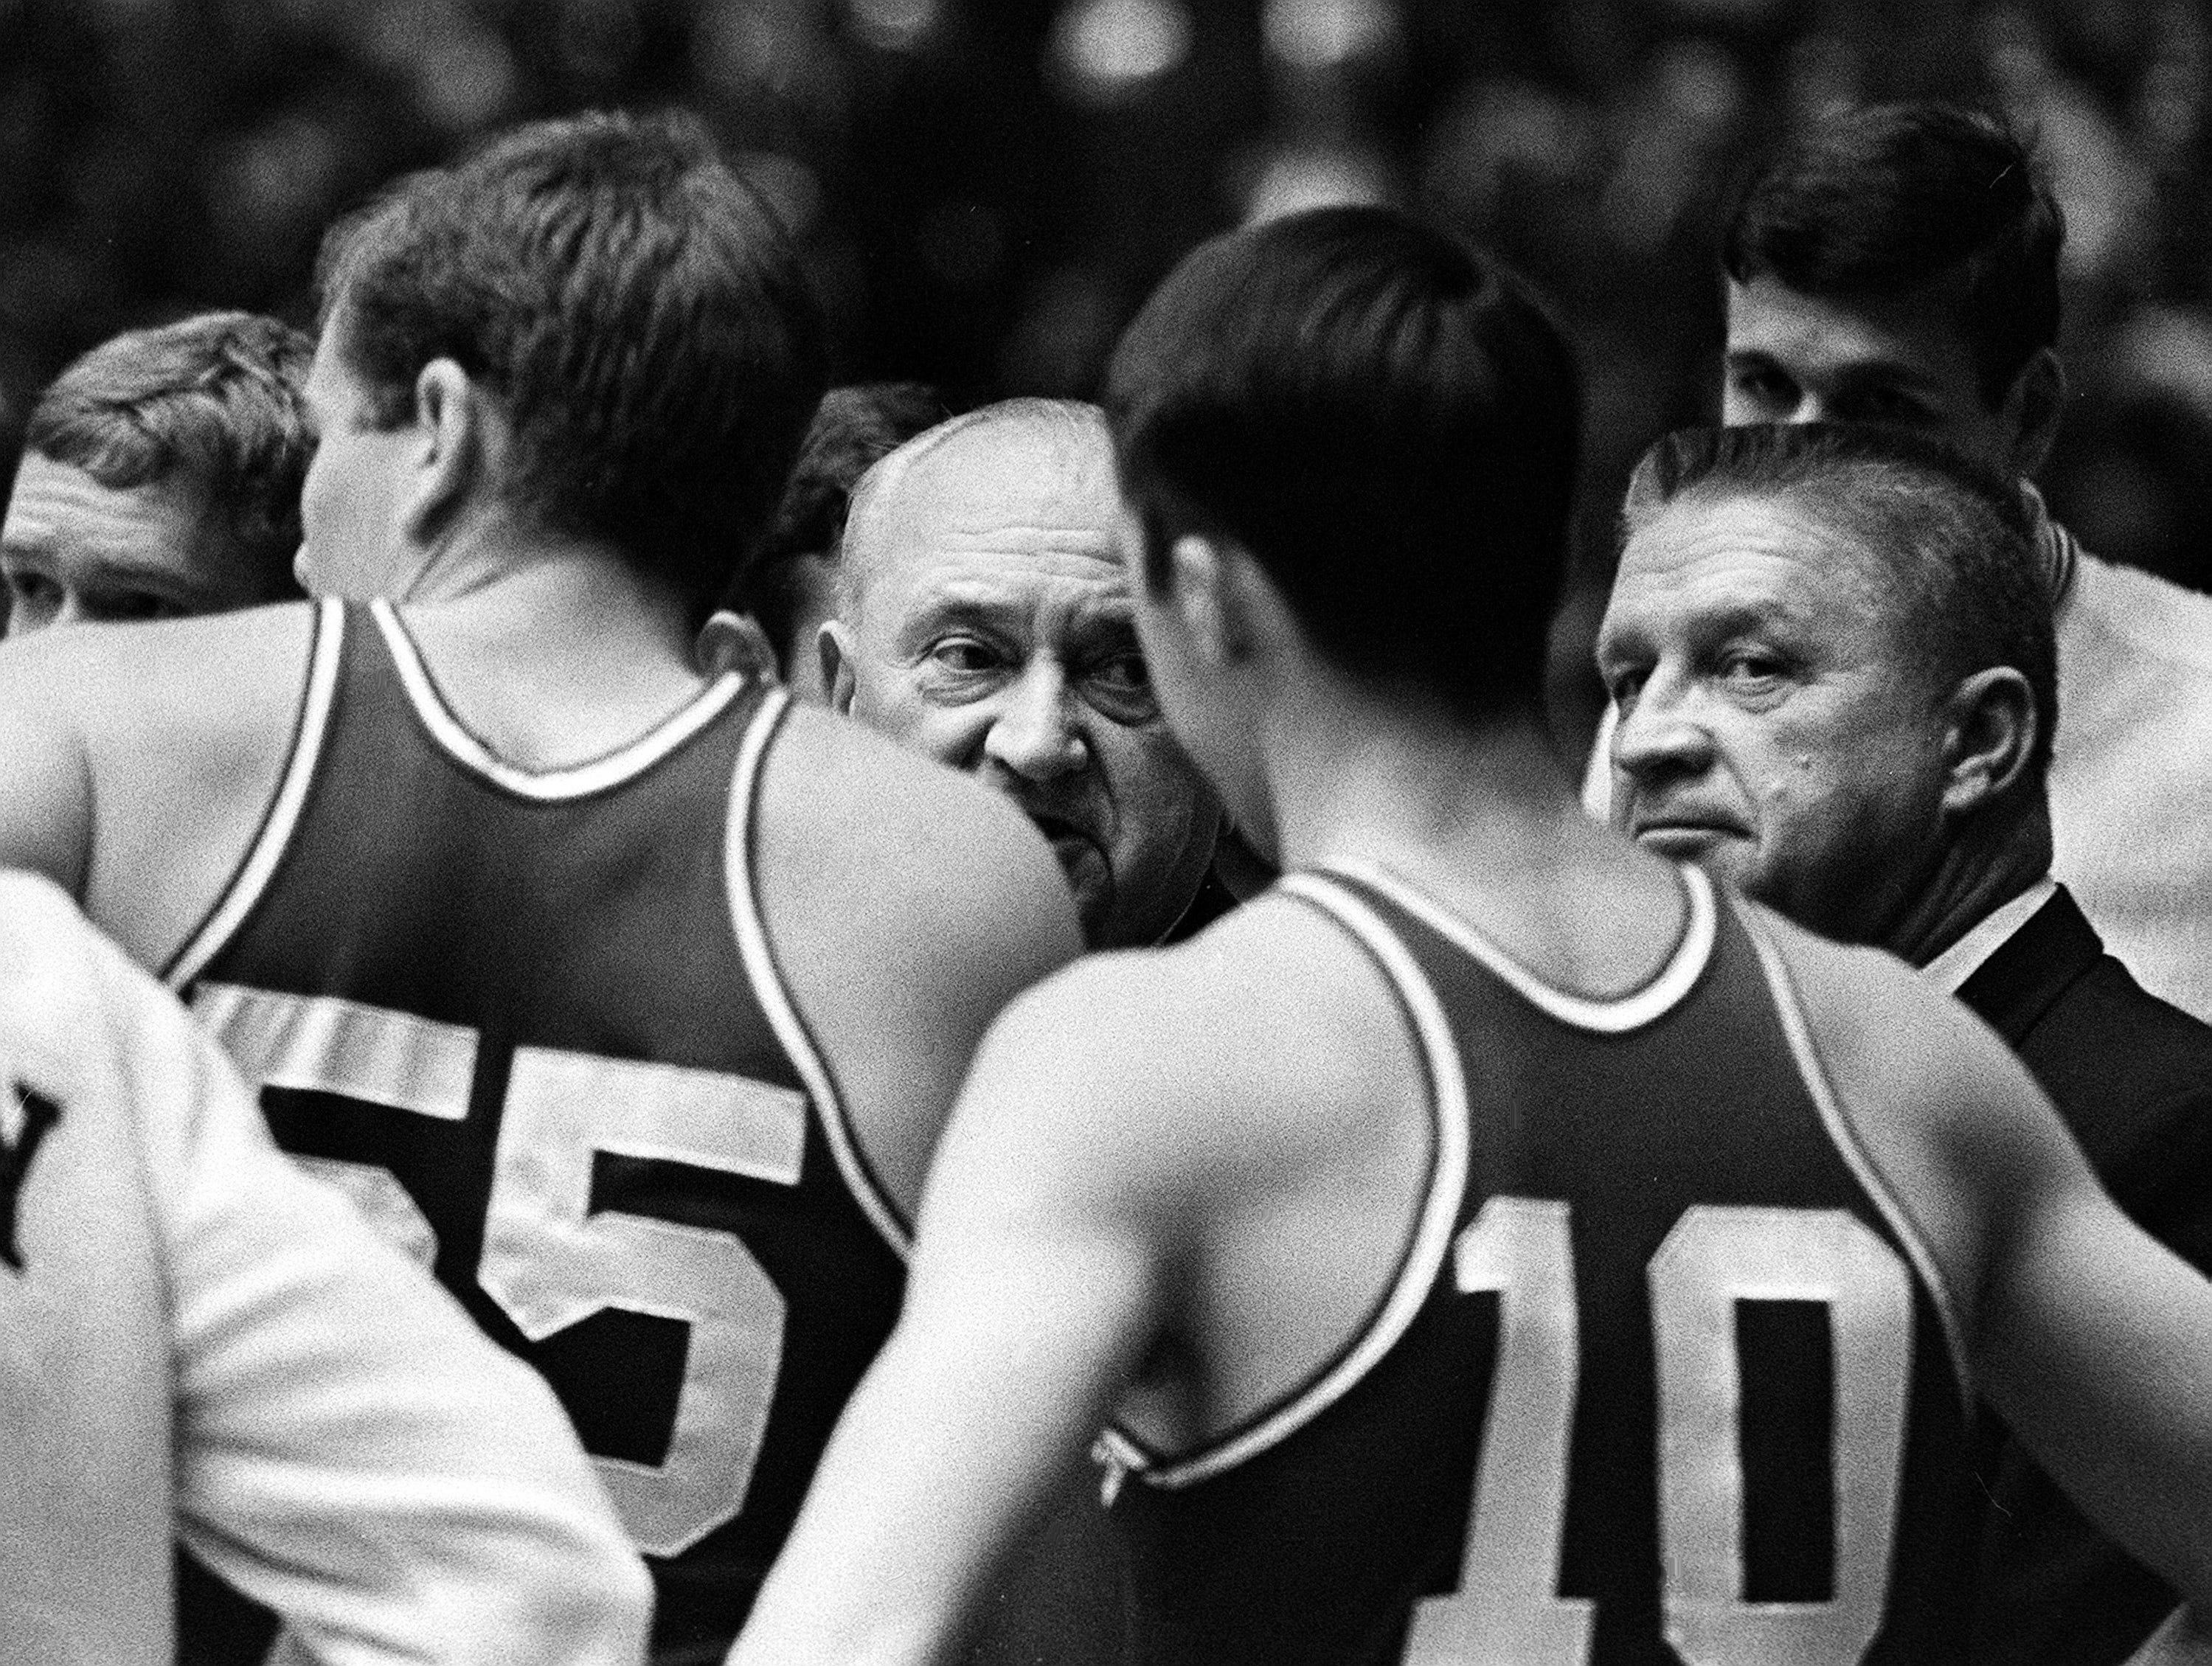 Kentucky head coach Adolph Rupp, center, and assistant coach Harry Lancaster, right, talk with his team during their game at Vanderbilt. The undefeated Wildcats won 105-90 over the Commodores before more than 9,500 fans in Memorial Gym Feb. 2, 1966.